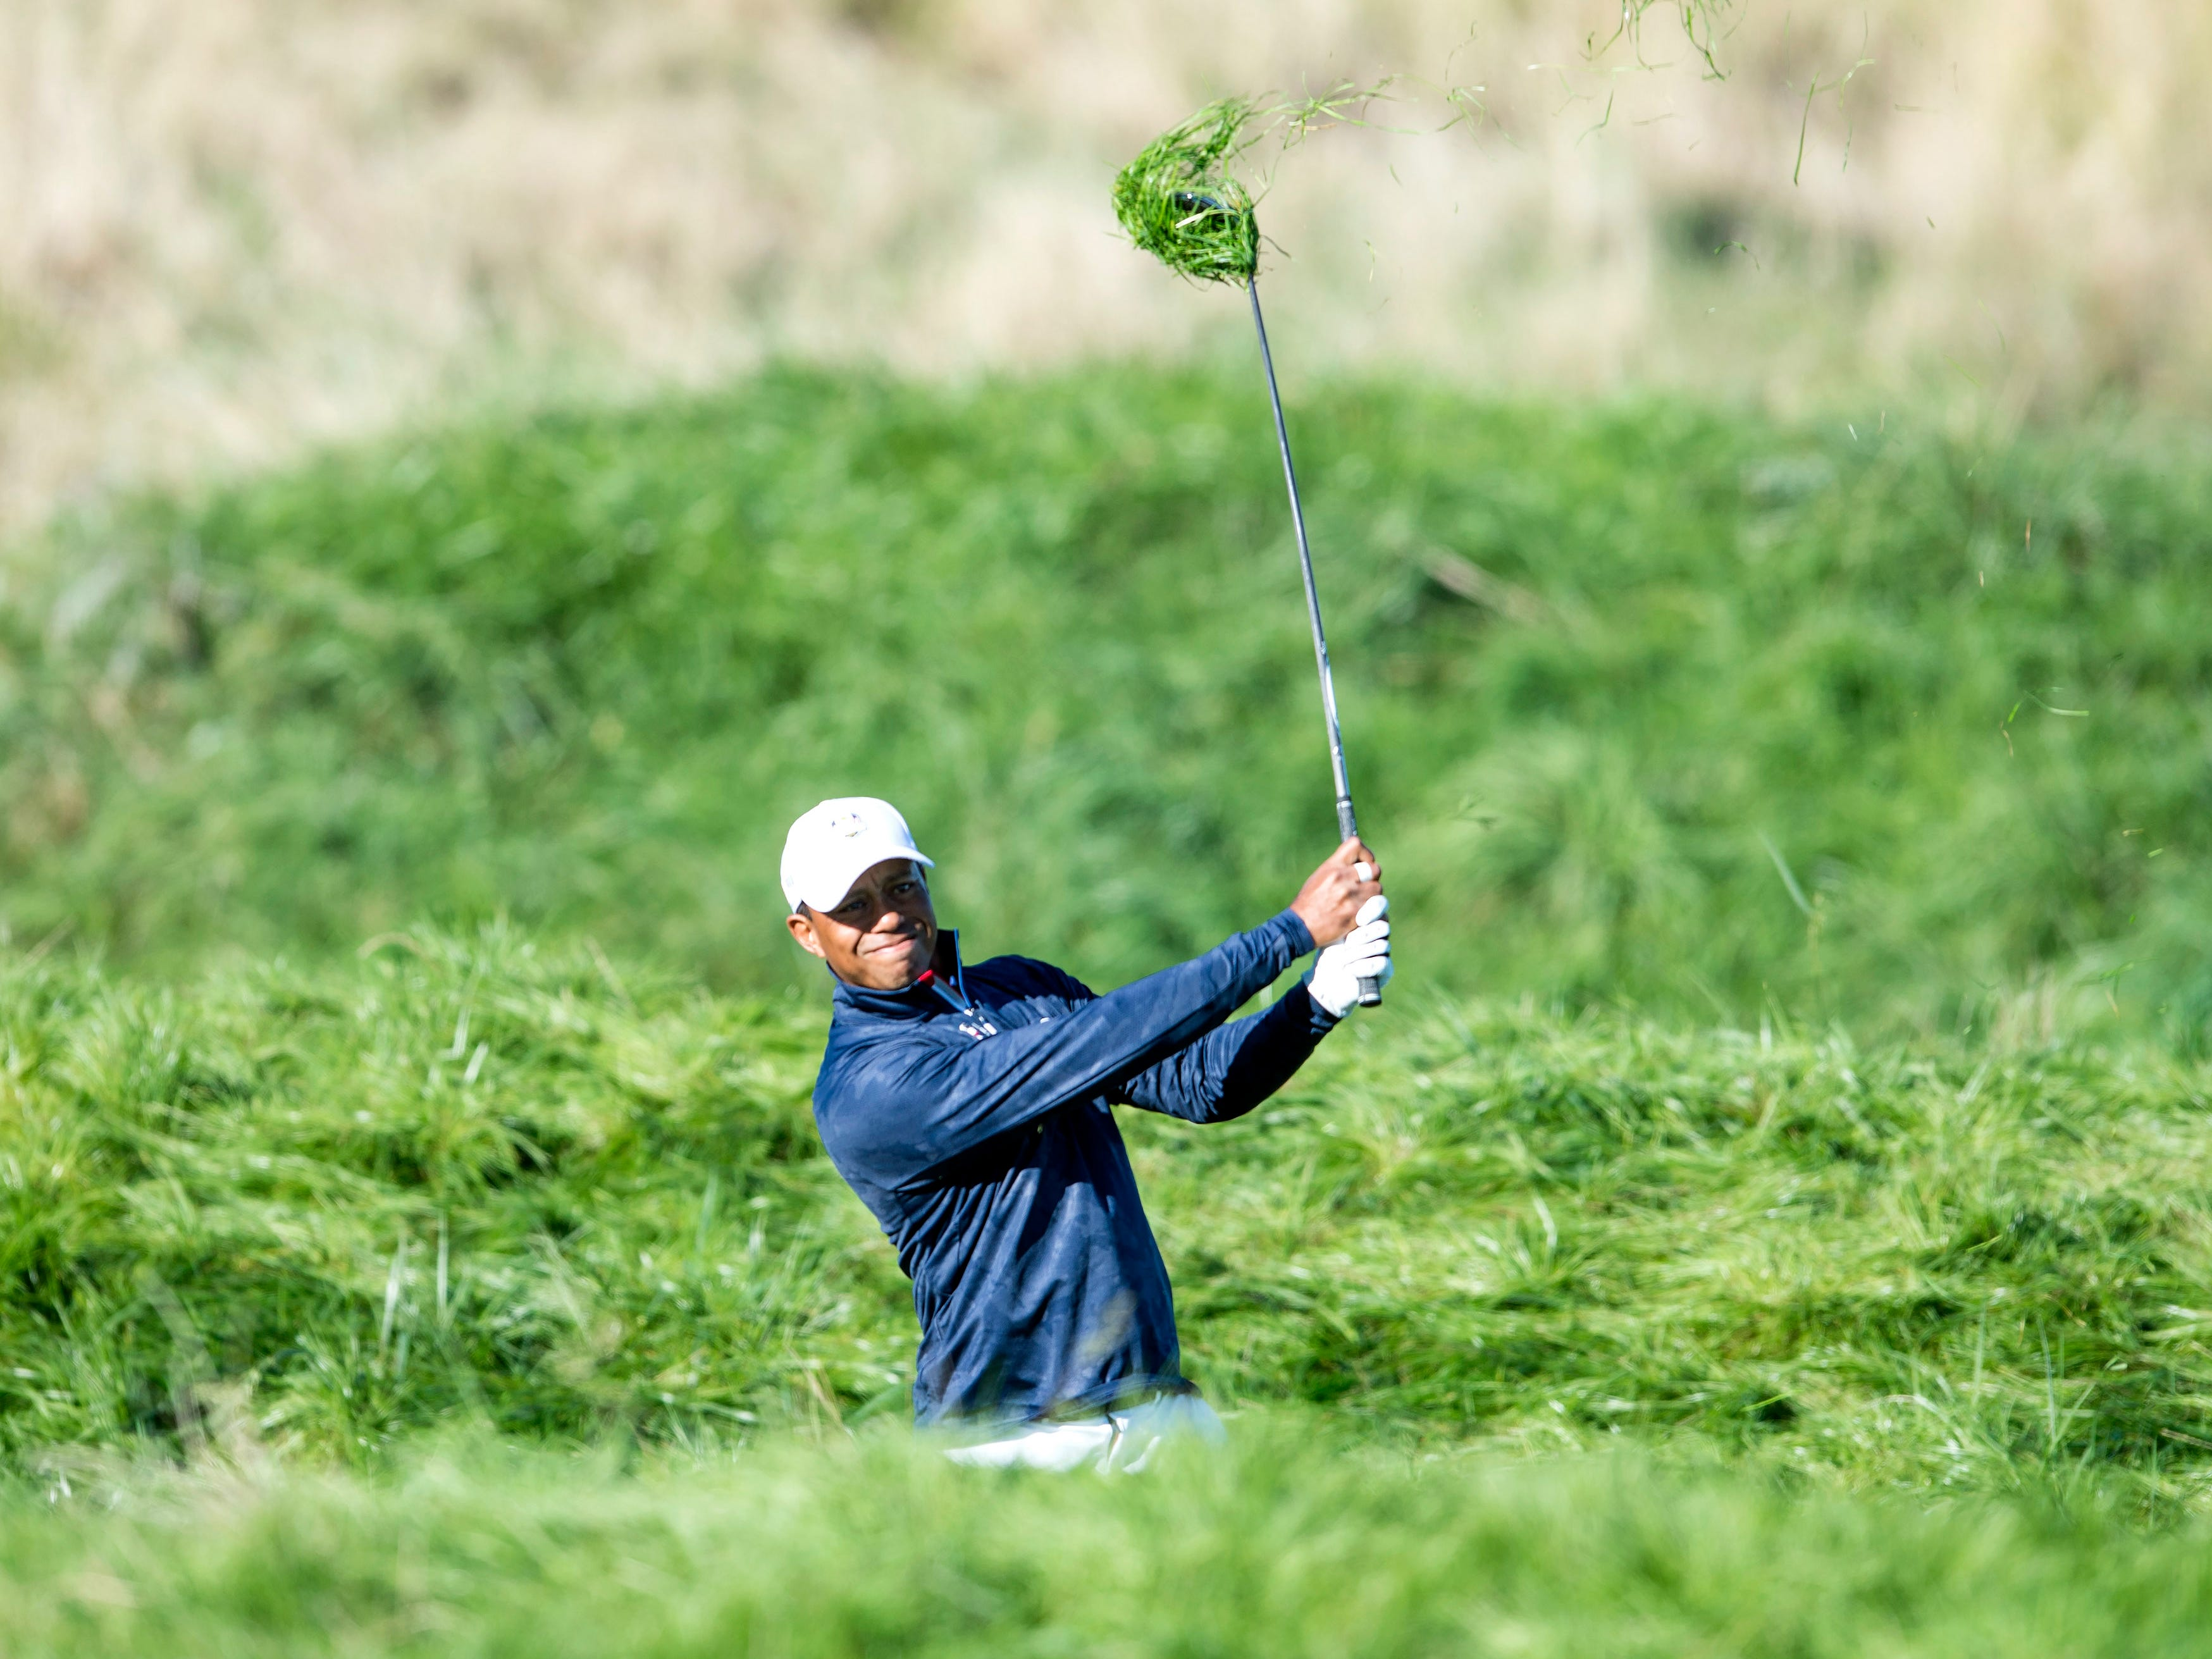 Tiger Woods plays from the rough on the 10th hole during a Ryder Cup practice round.